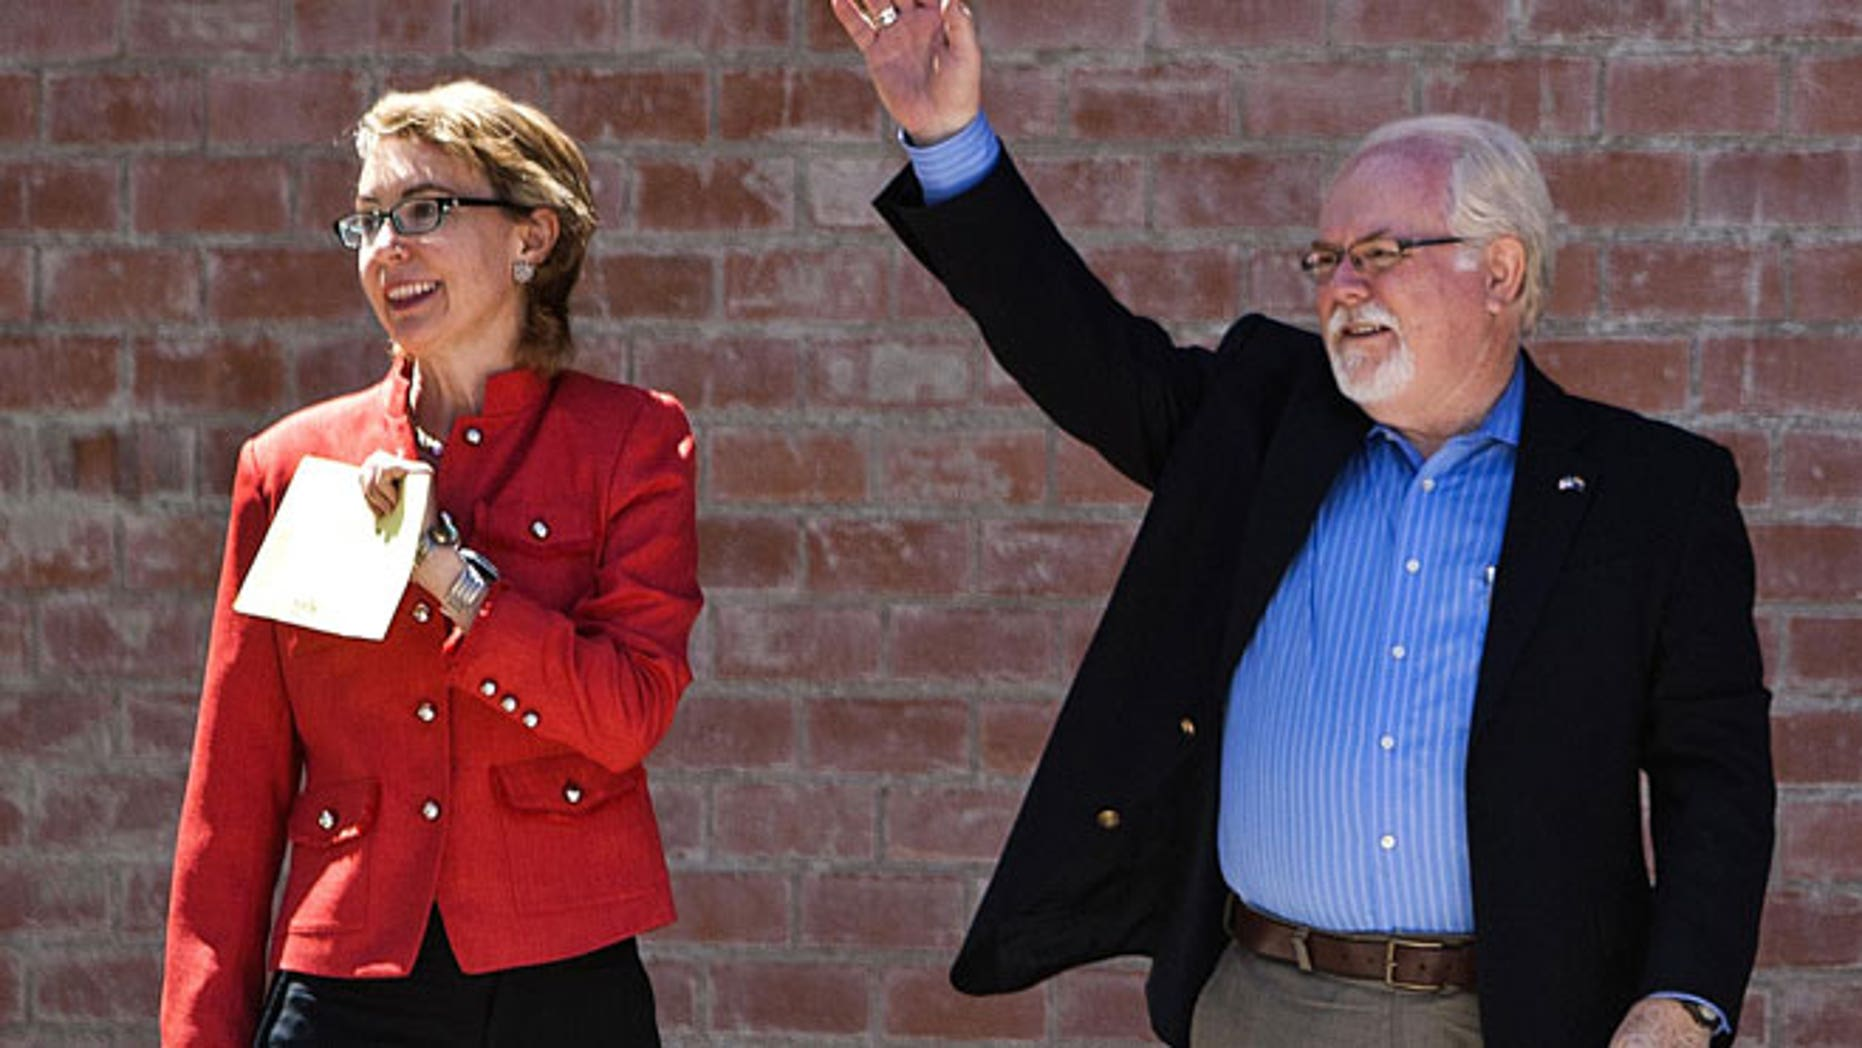 June 12, 2012: Former Rep. Gabrielle Giffords, left, and Ron Barber enter the polling place at St. Cyril's Catholic Church in Tucson, Ariz.